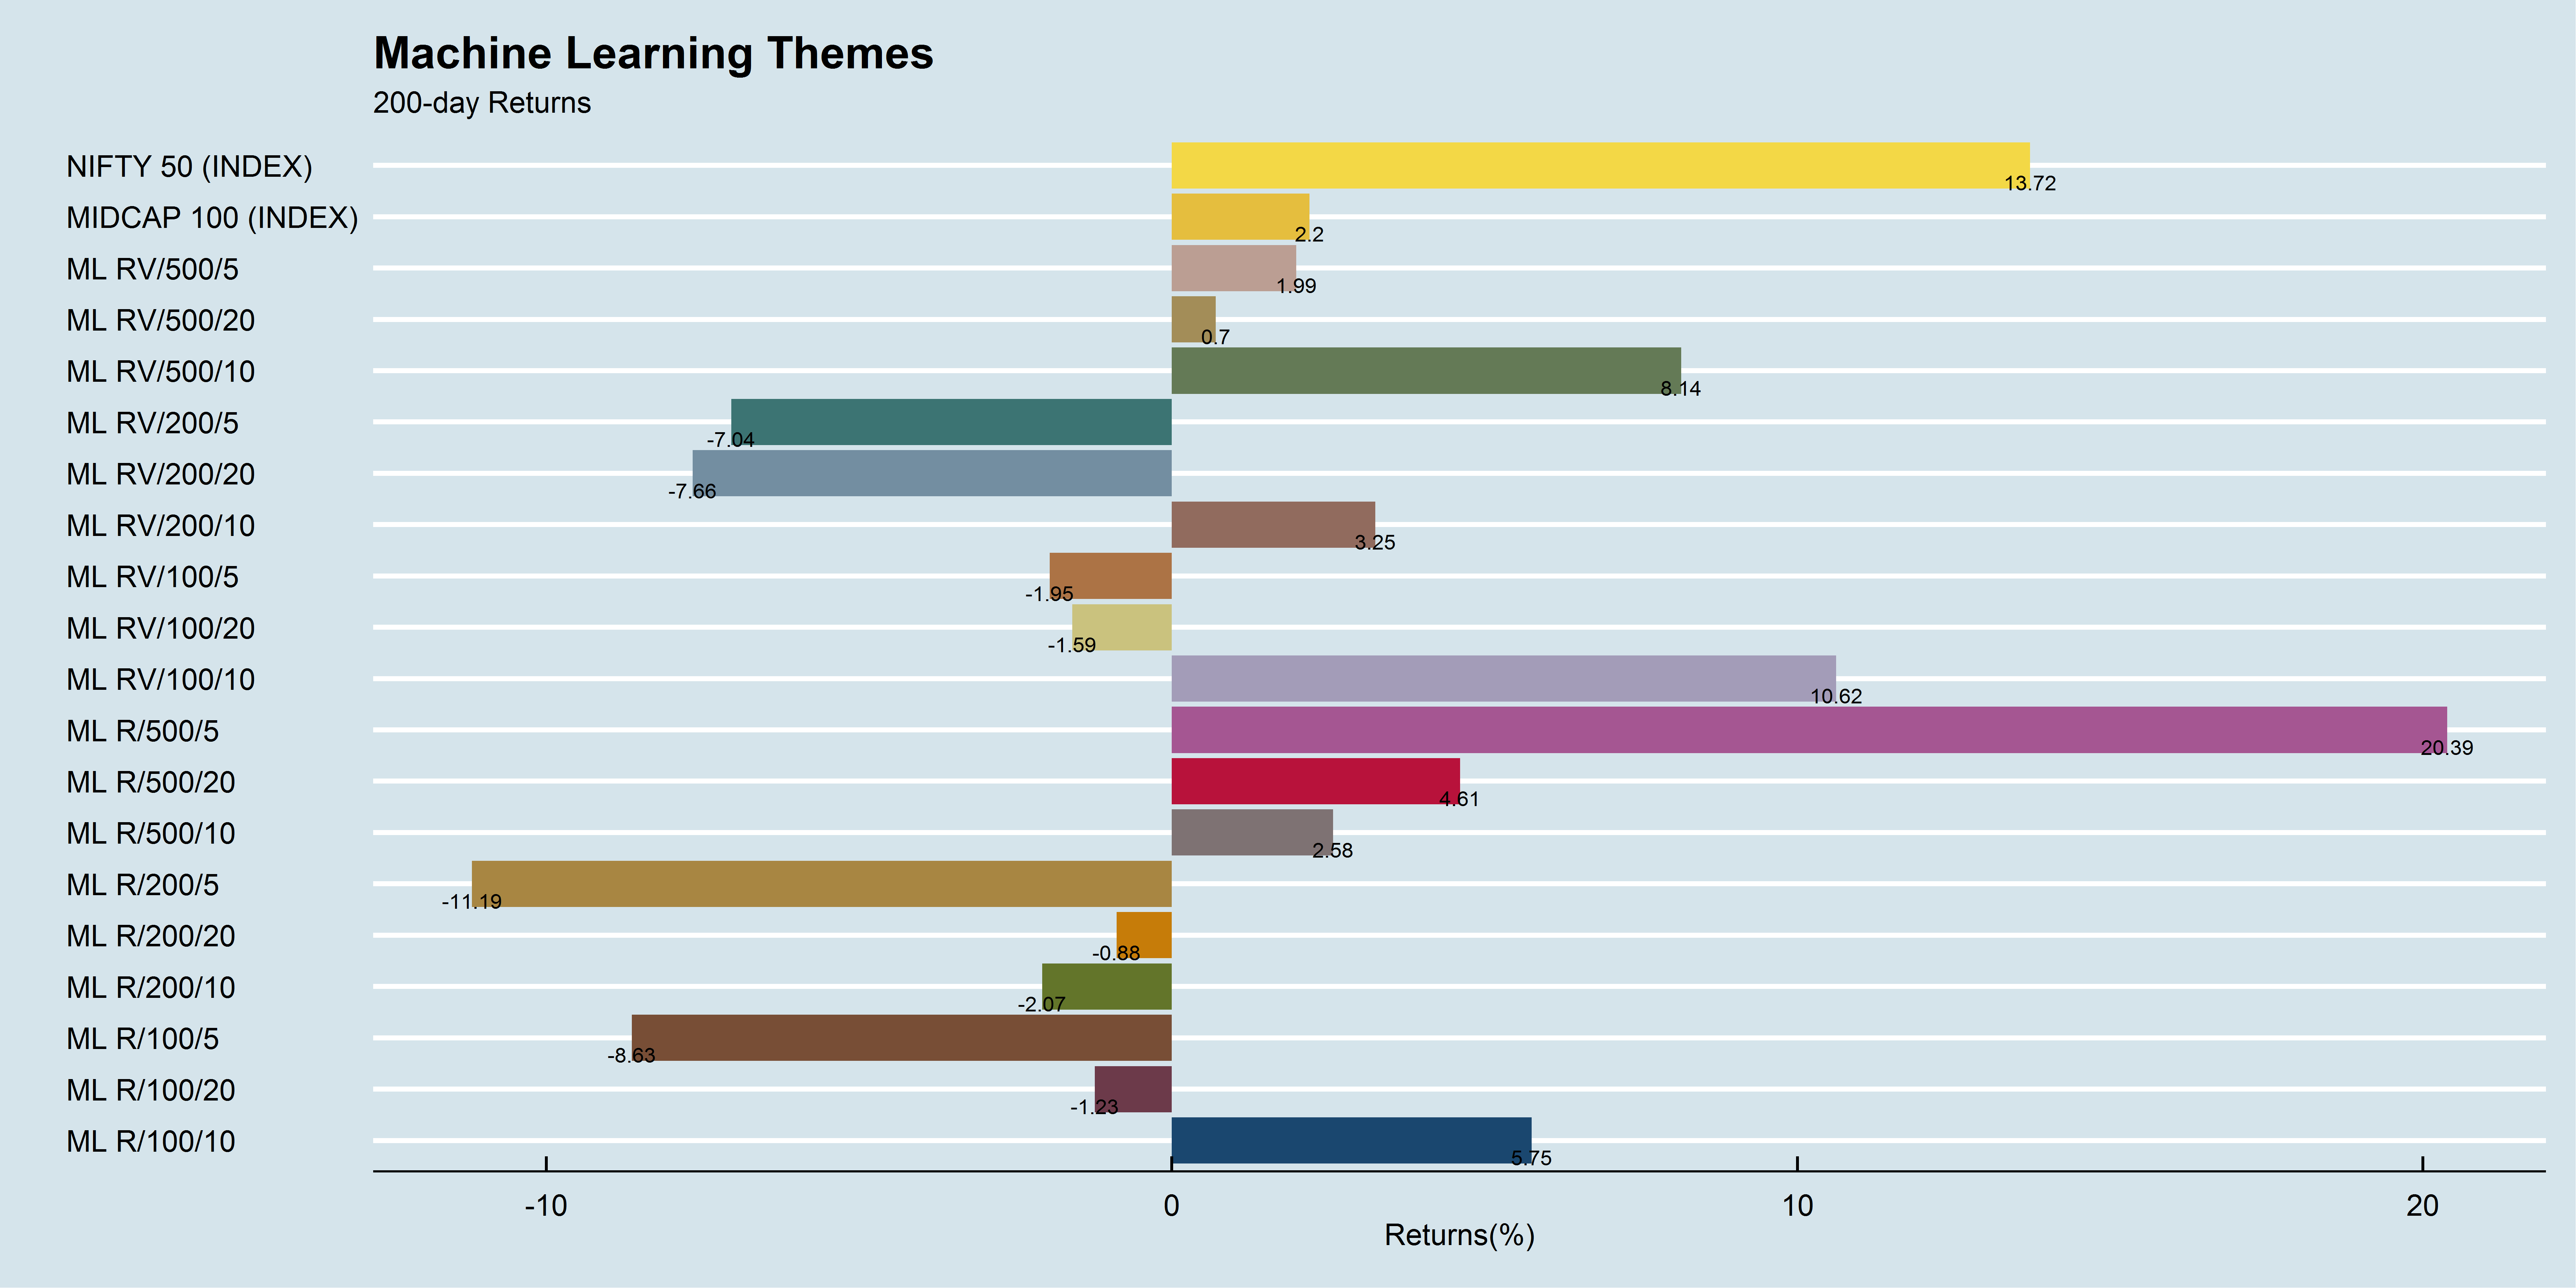 Machine Learning Themes 200-day performance